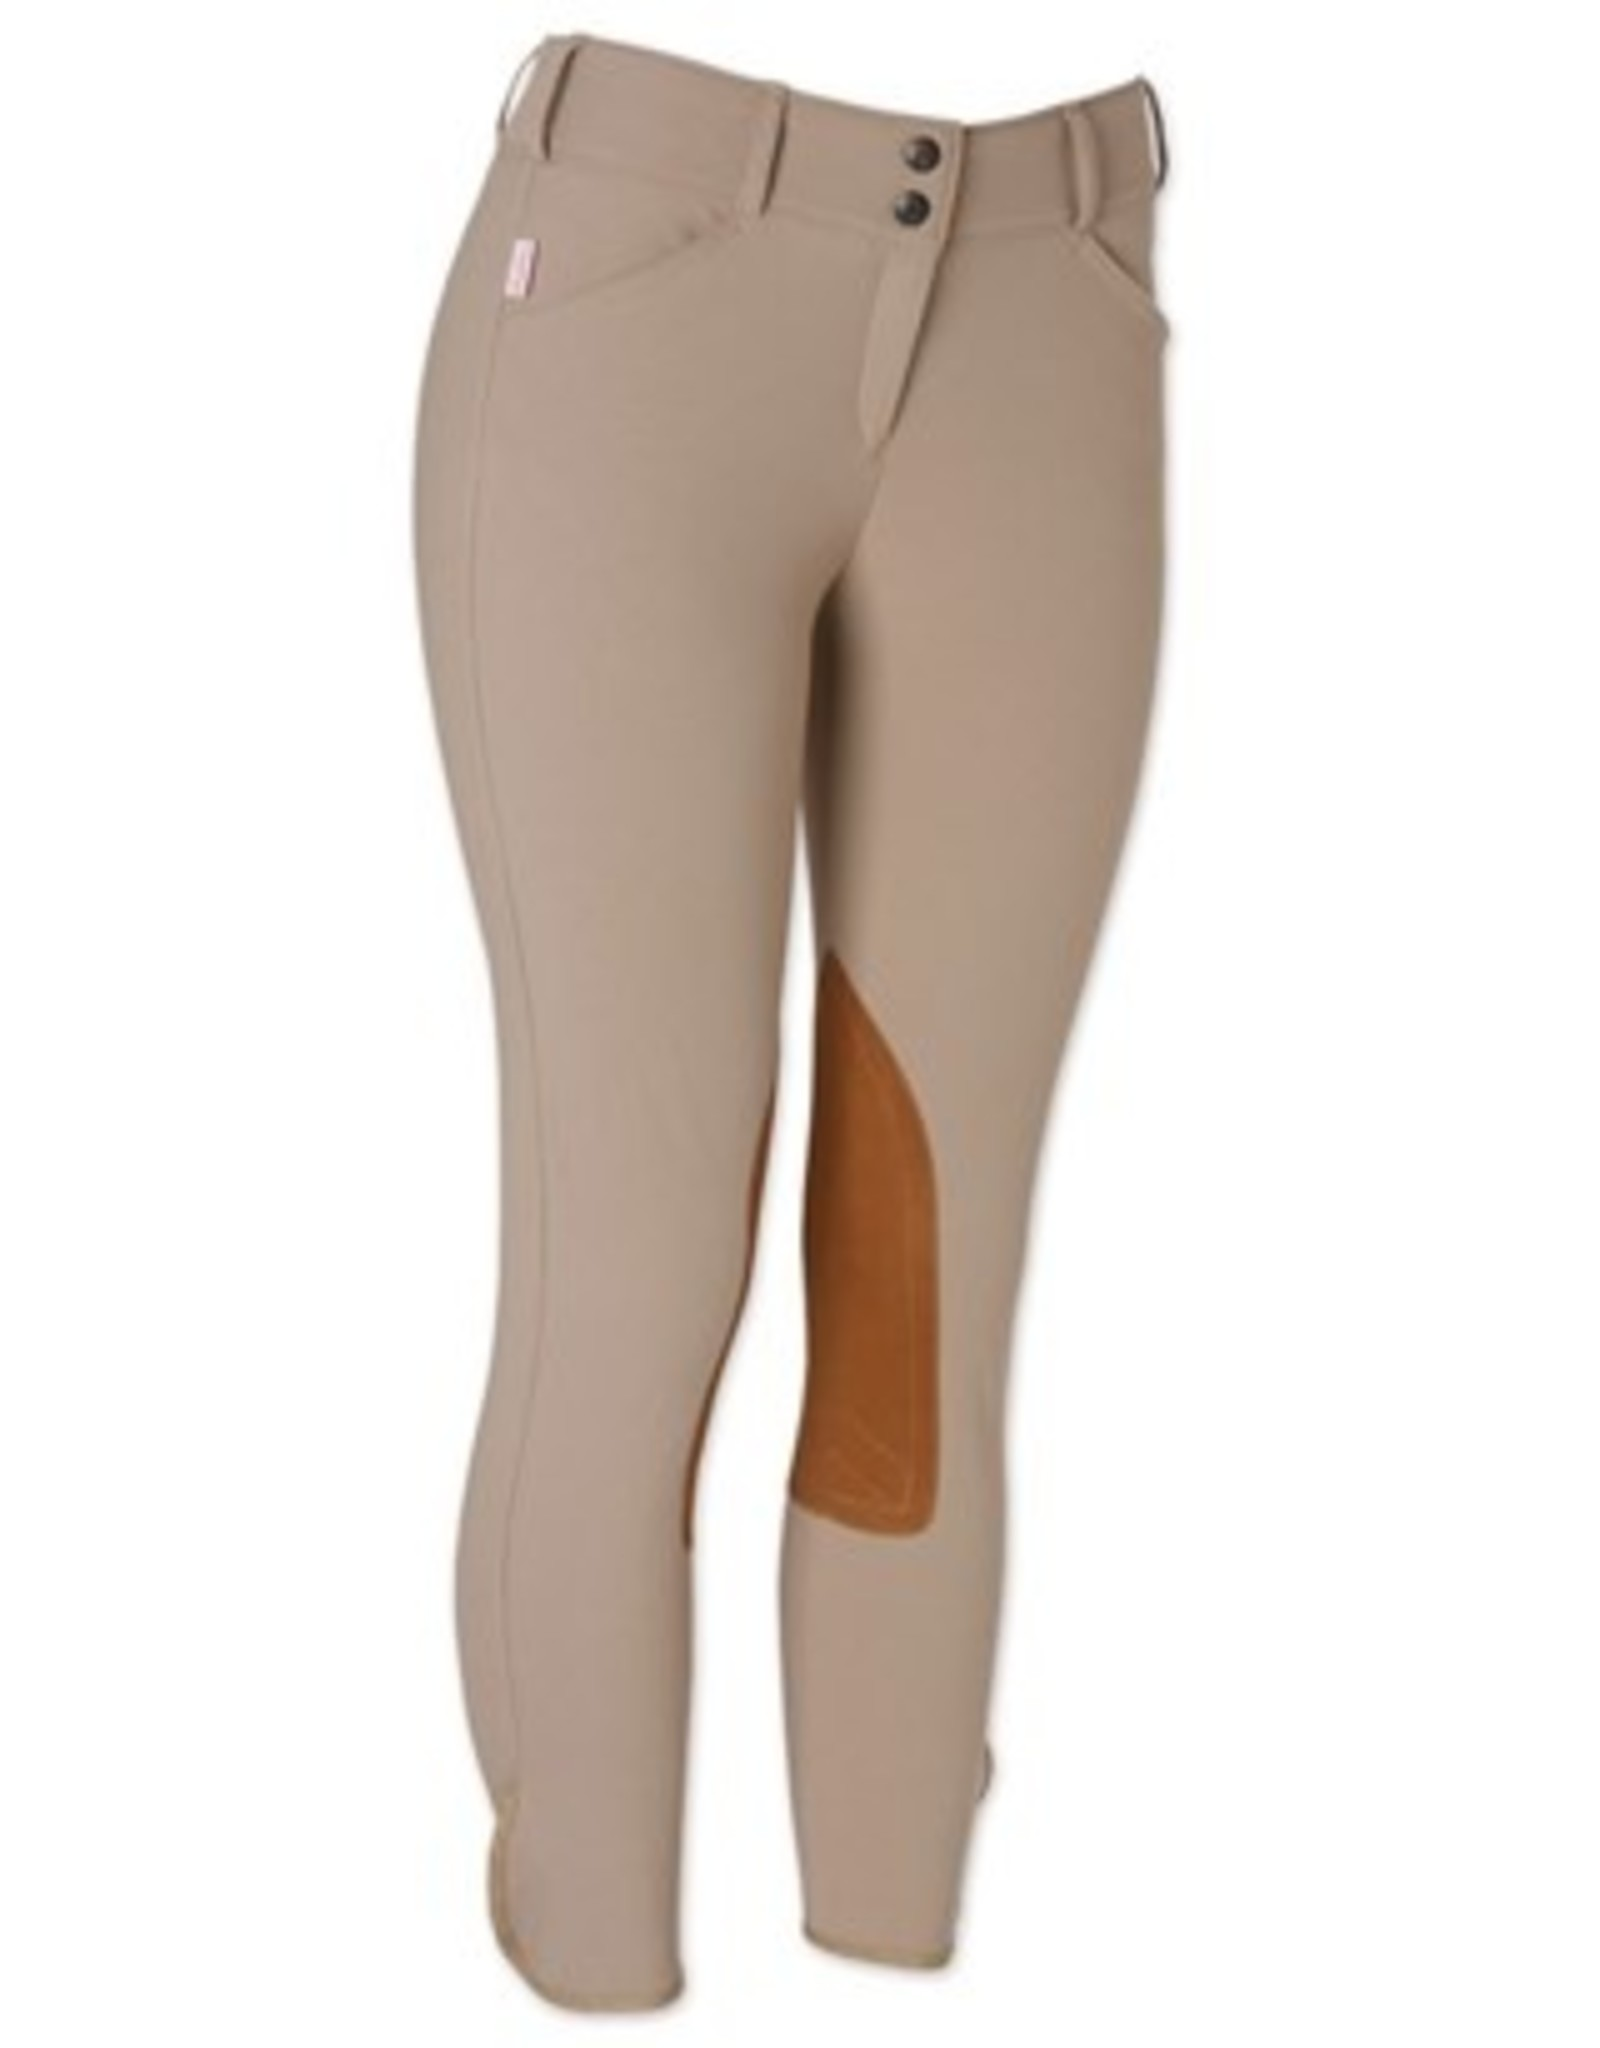 Tailored Sportsman Ladies' Low Rise Trophy Hunter Breeches